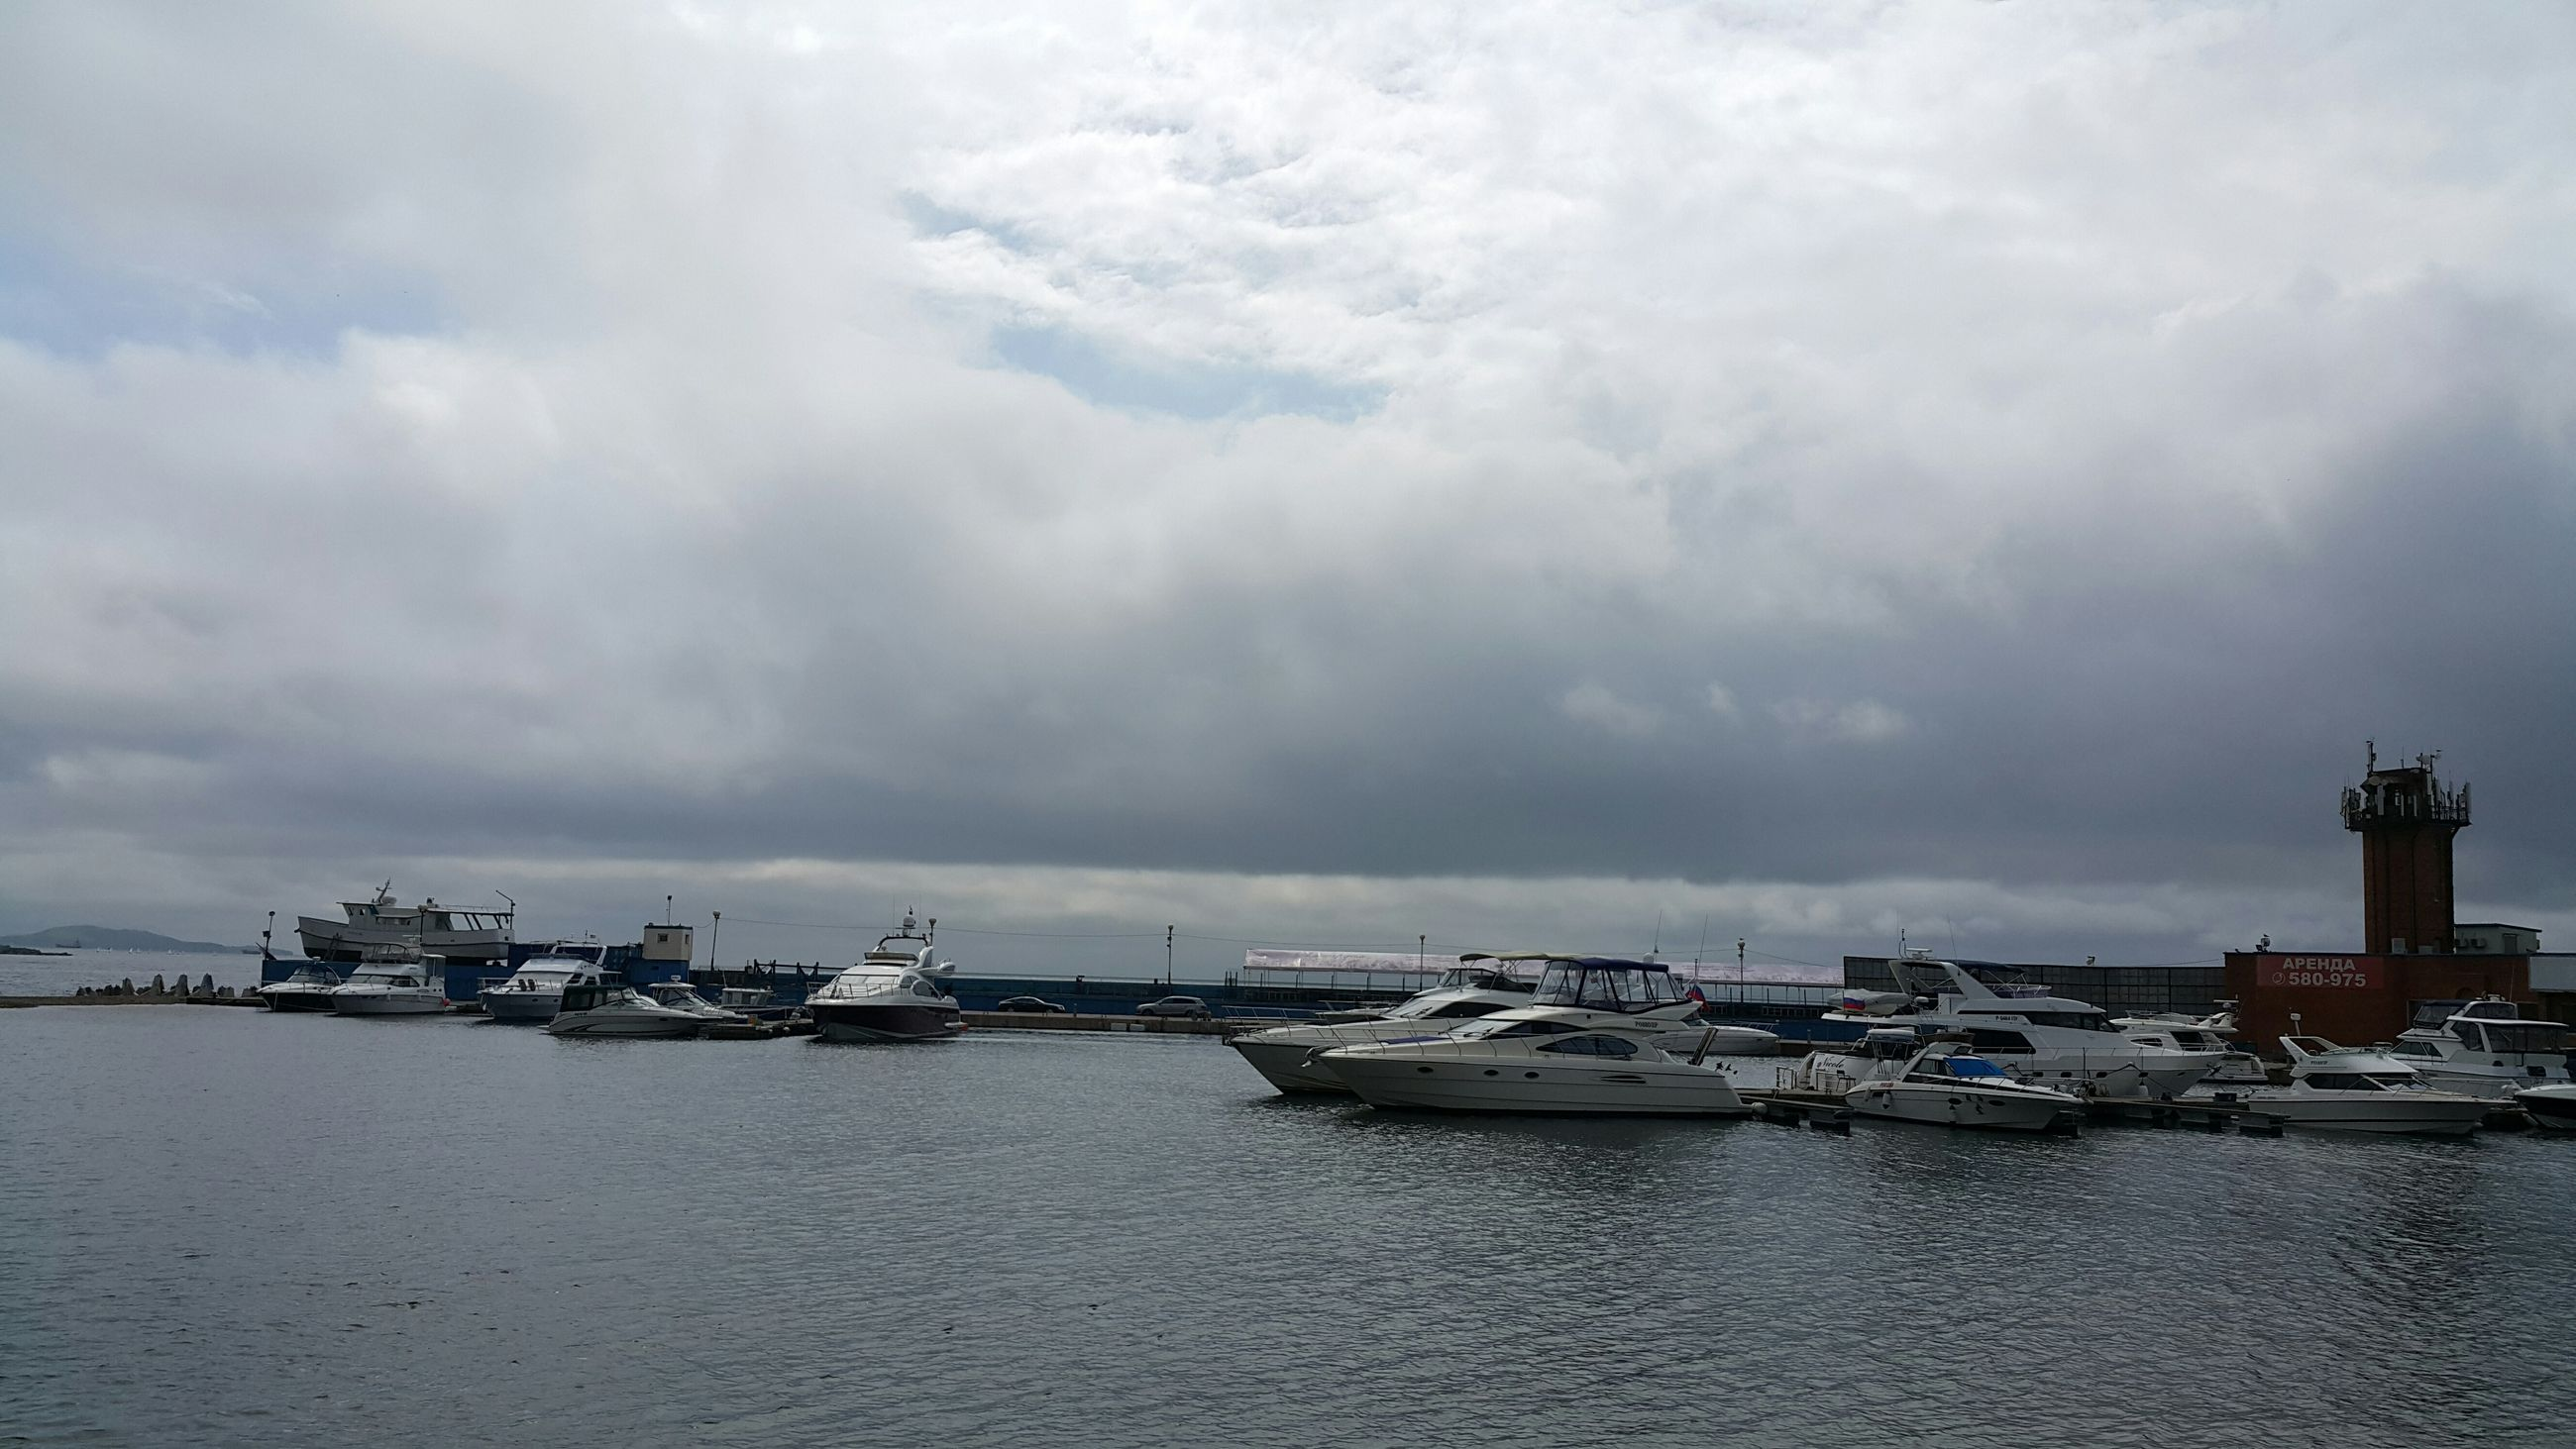 water, sky, sea, nautical vessel, cloud - sky, transportation, mode of transport, cloudy, moored, waterfront, boat, weather, harbor, built structure, overcast, building exterior, architecture, nature, tranquility, cloud